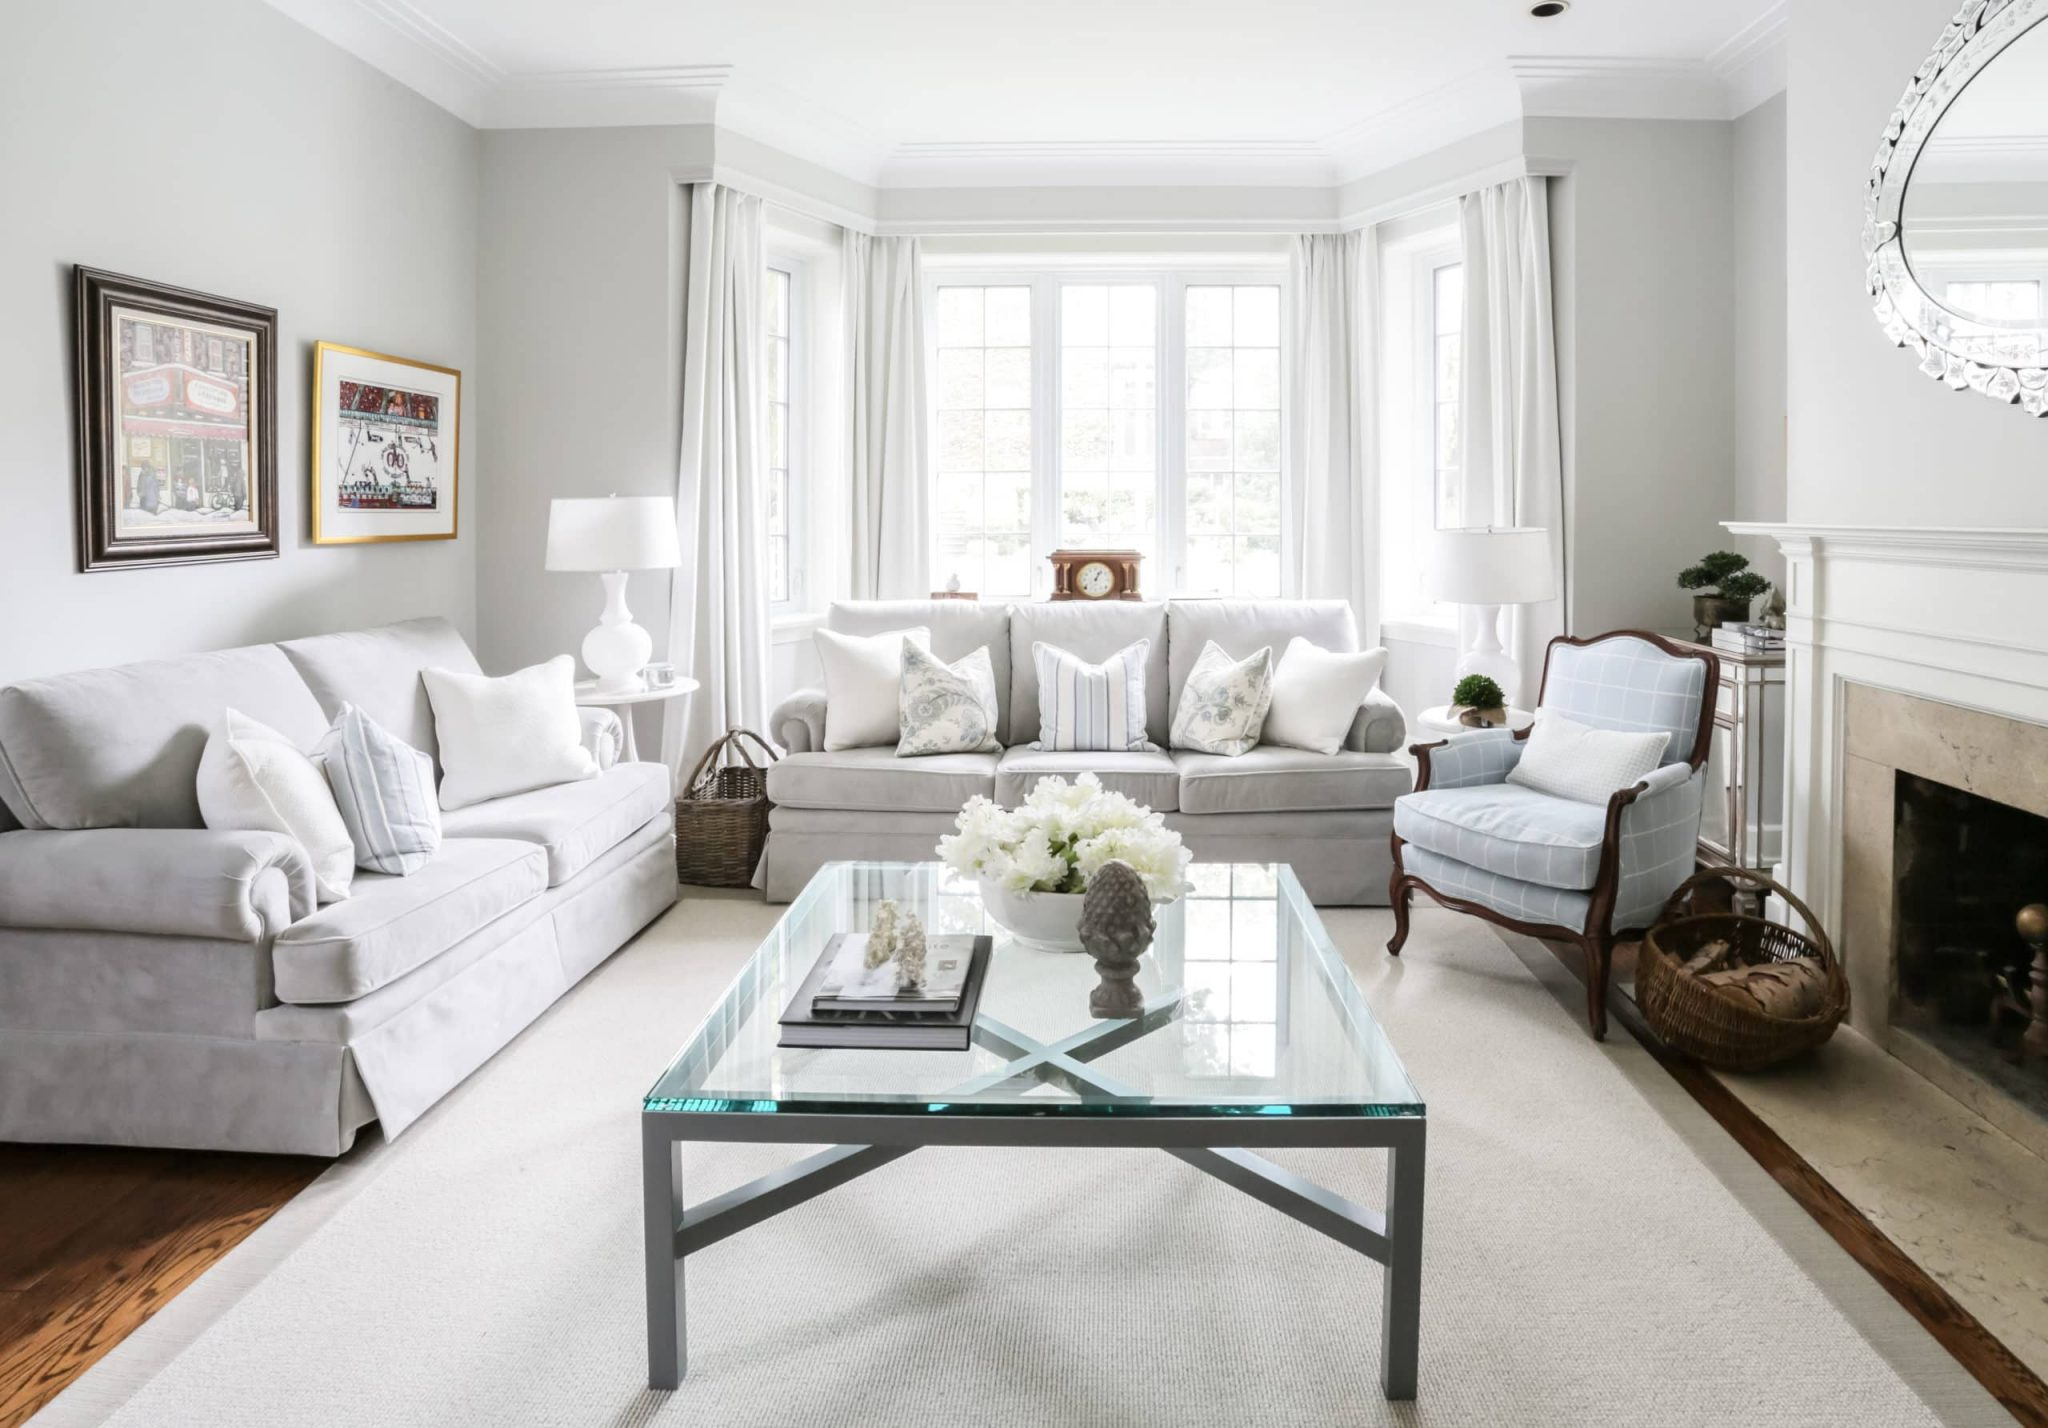 Bright living room with a glass coffee table in the center